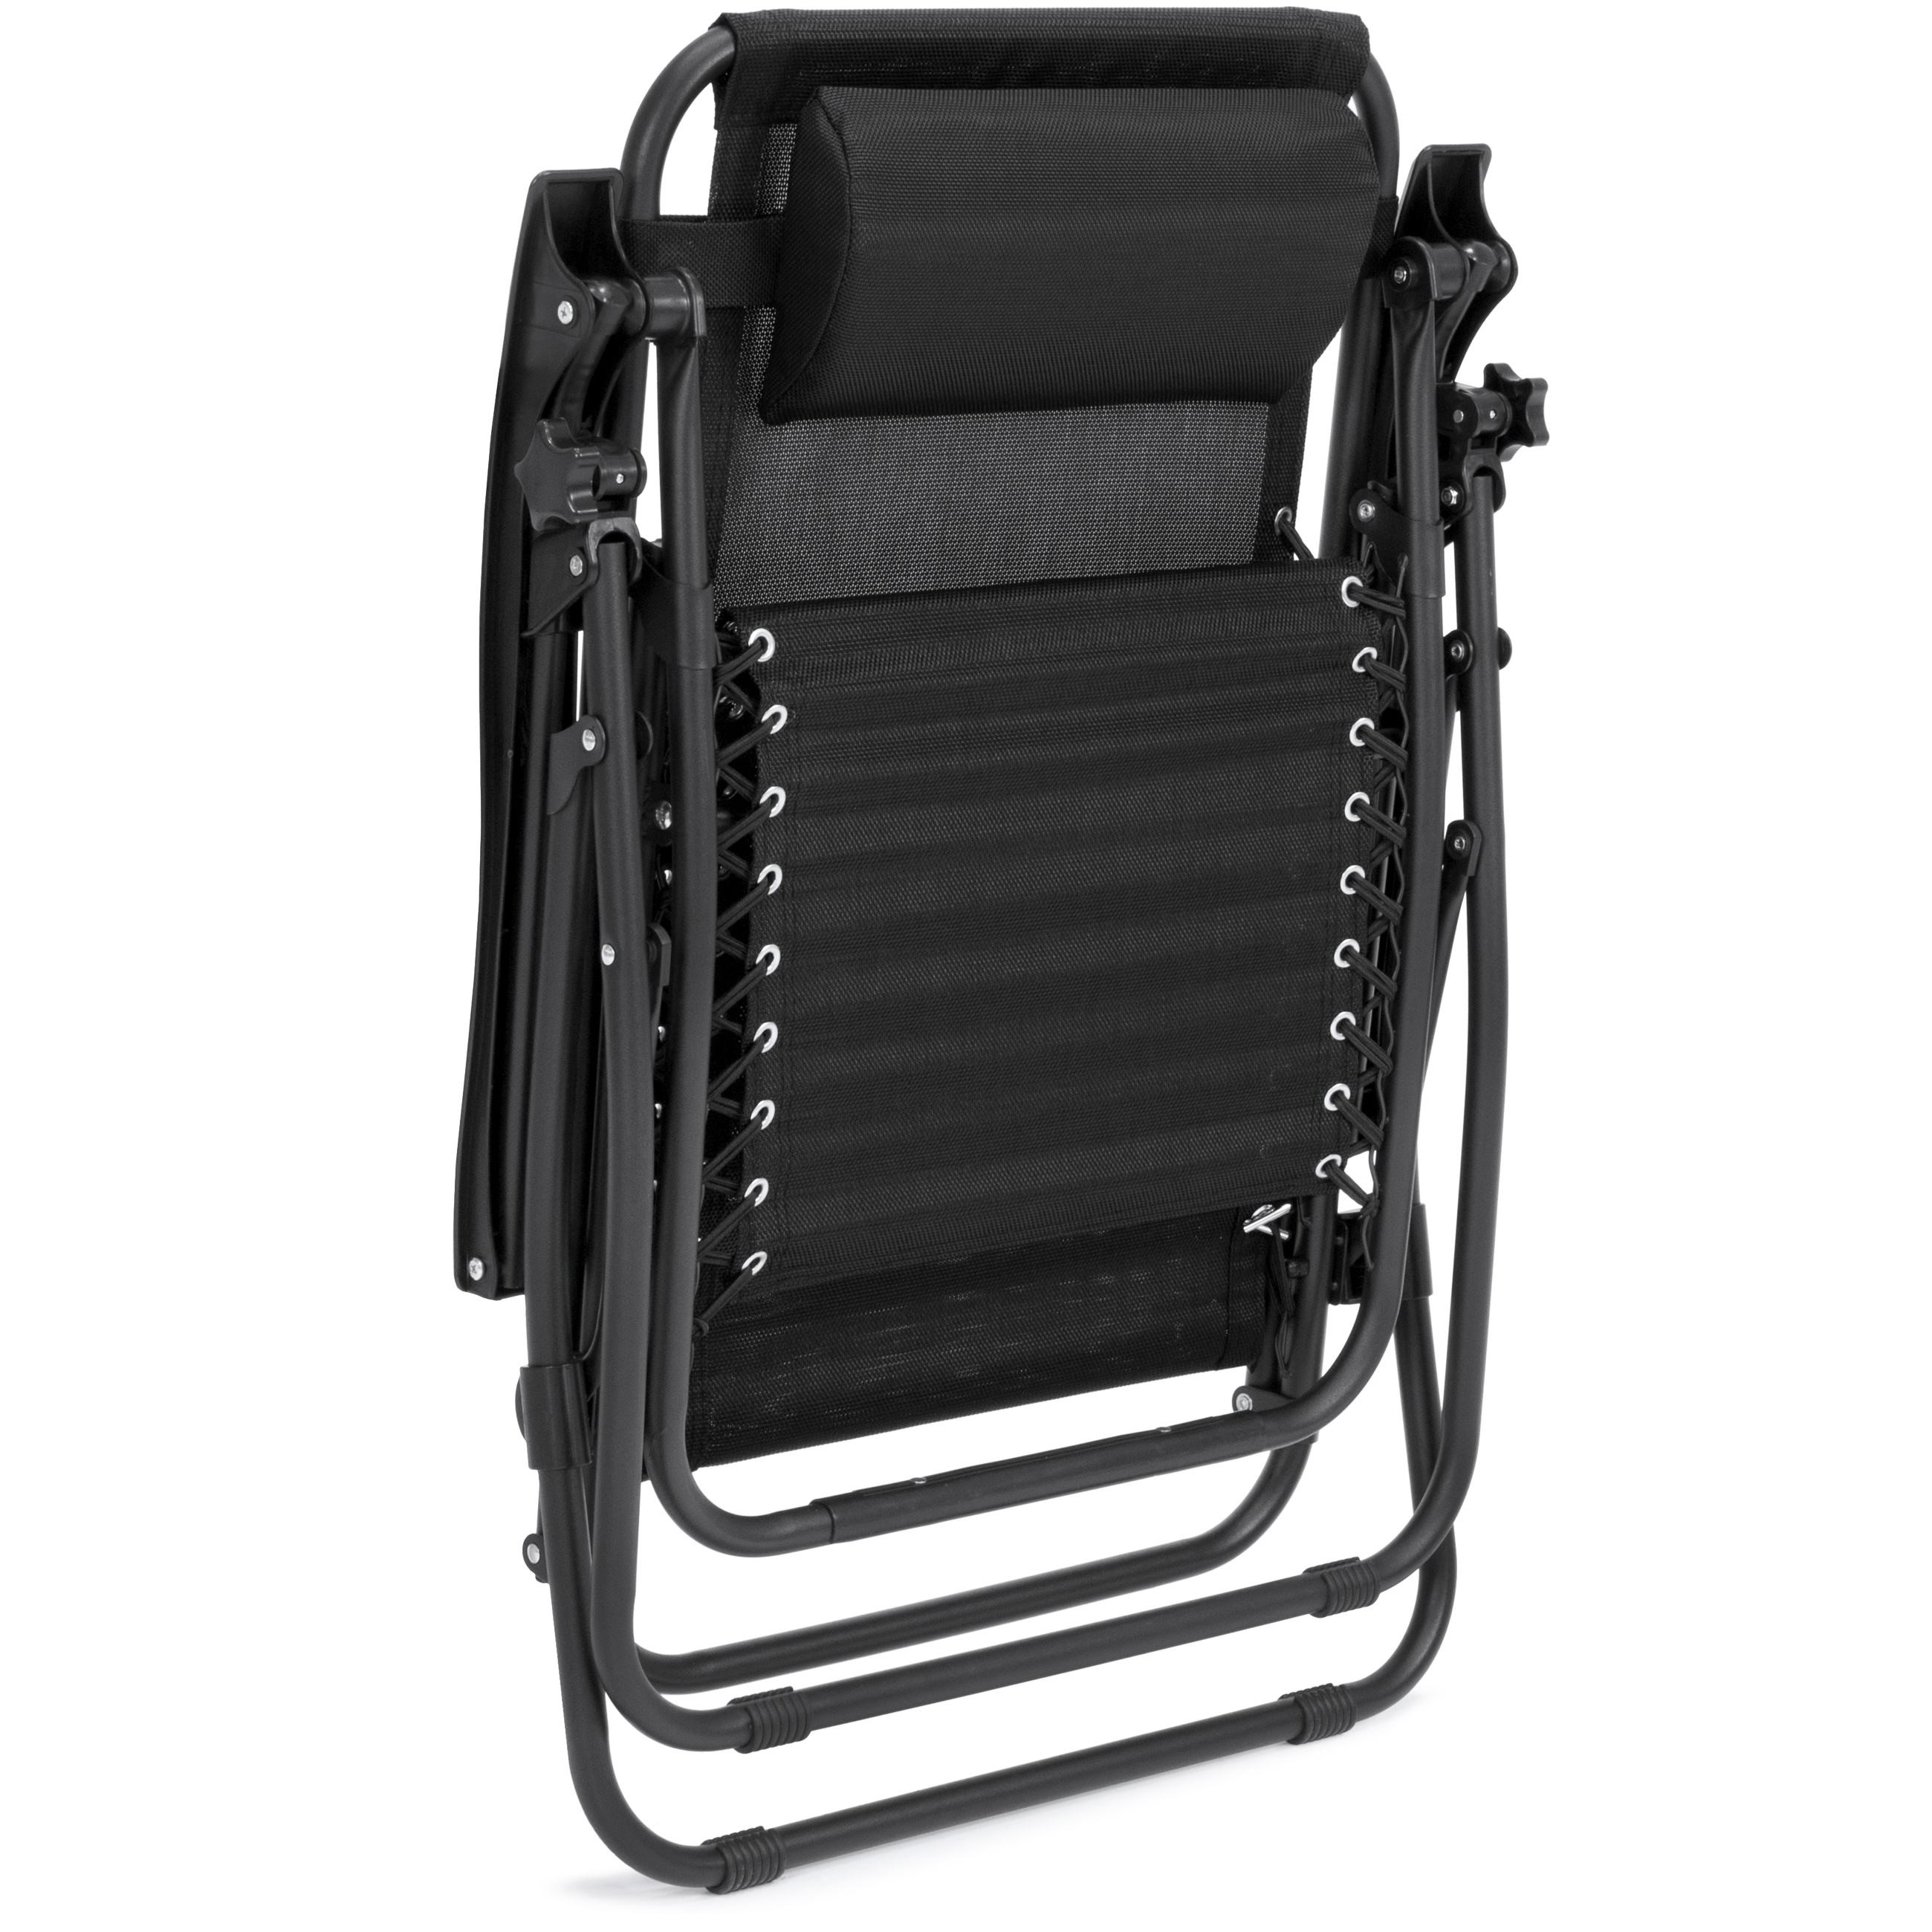 BCP-Set-of-2-Adjustable-Zero-Gravity-Patio-Chair-Recliners-w-Cup-Holders thumbnail 19